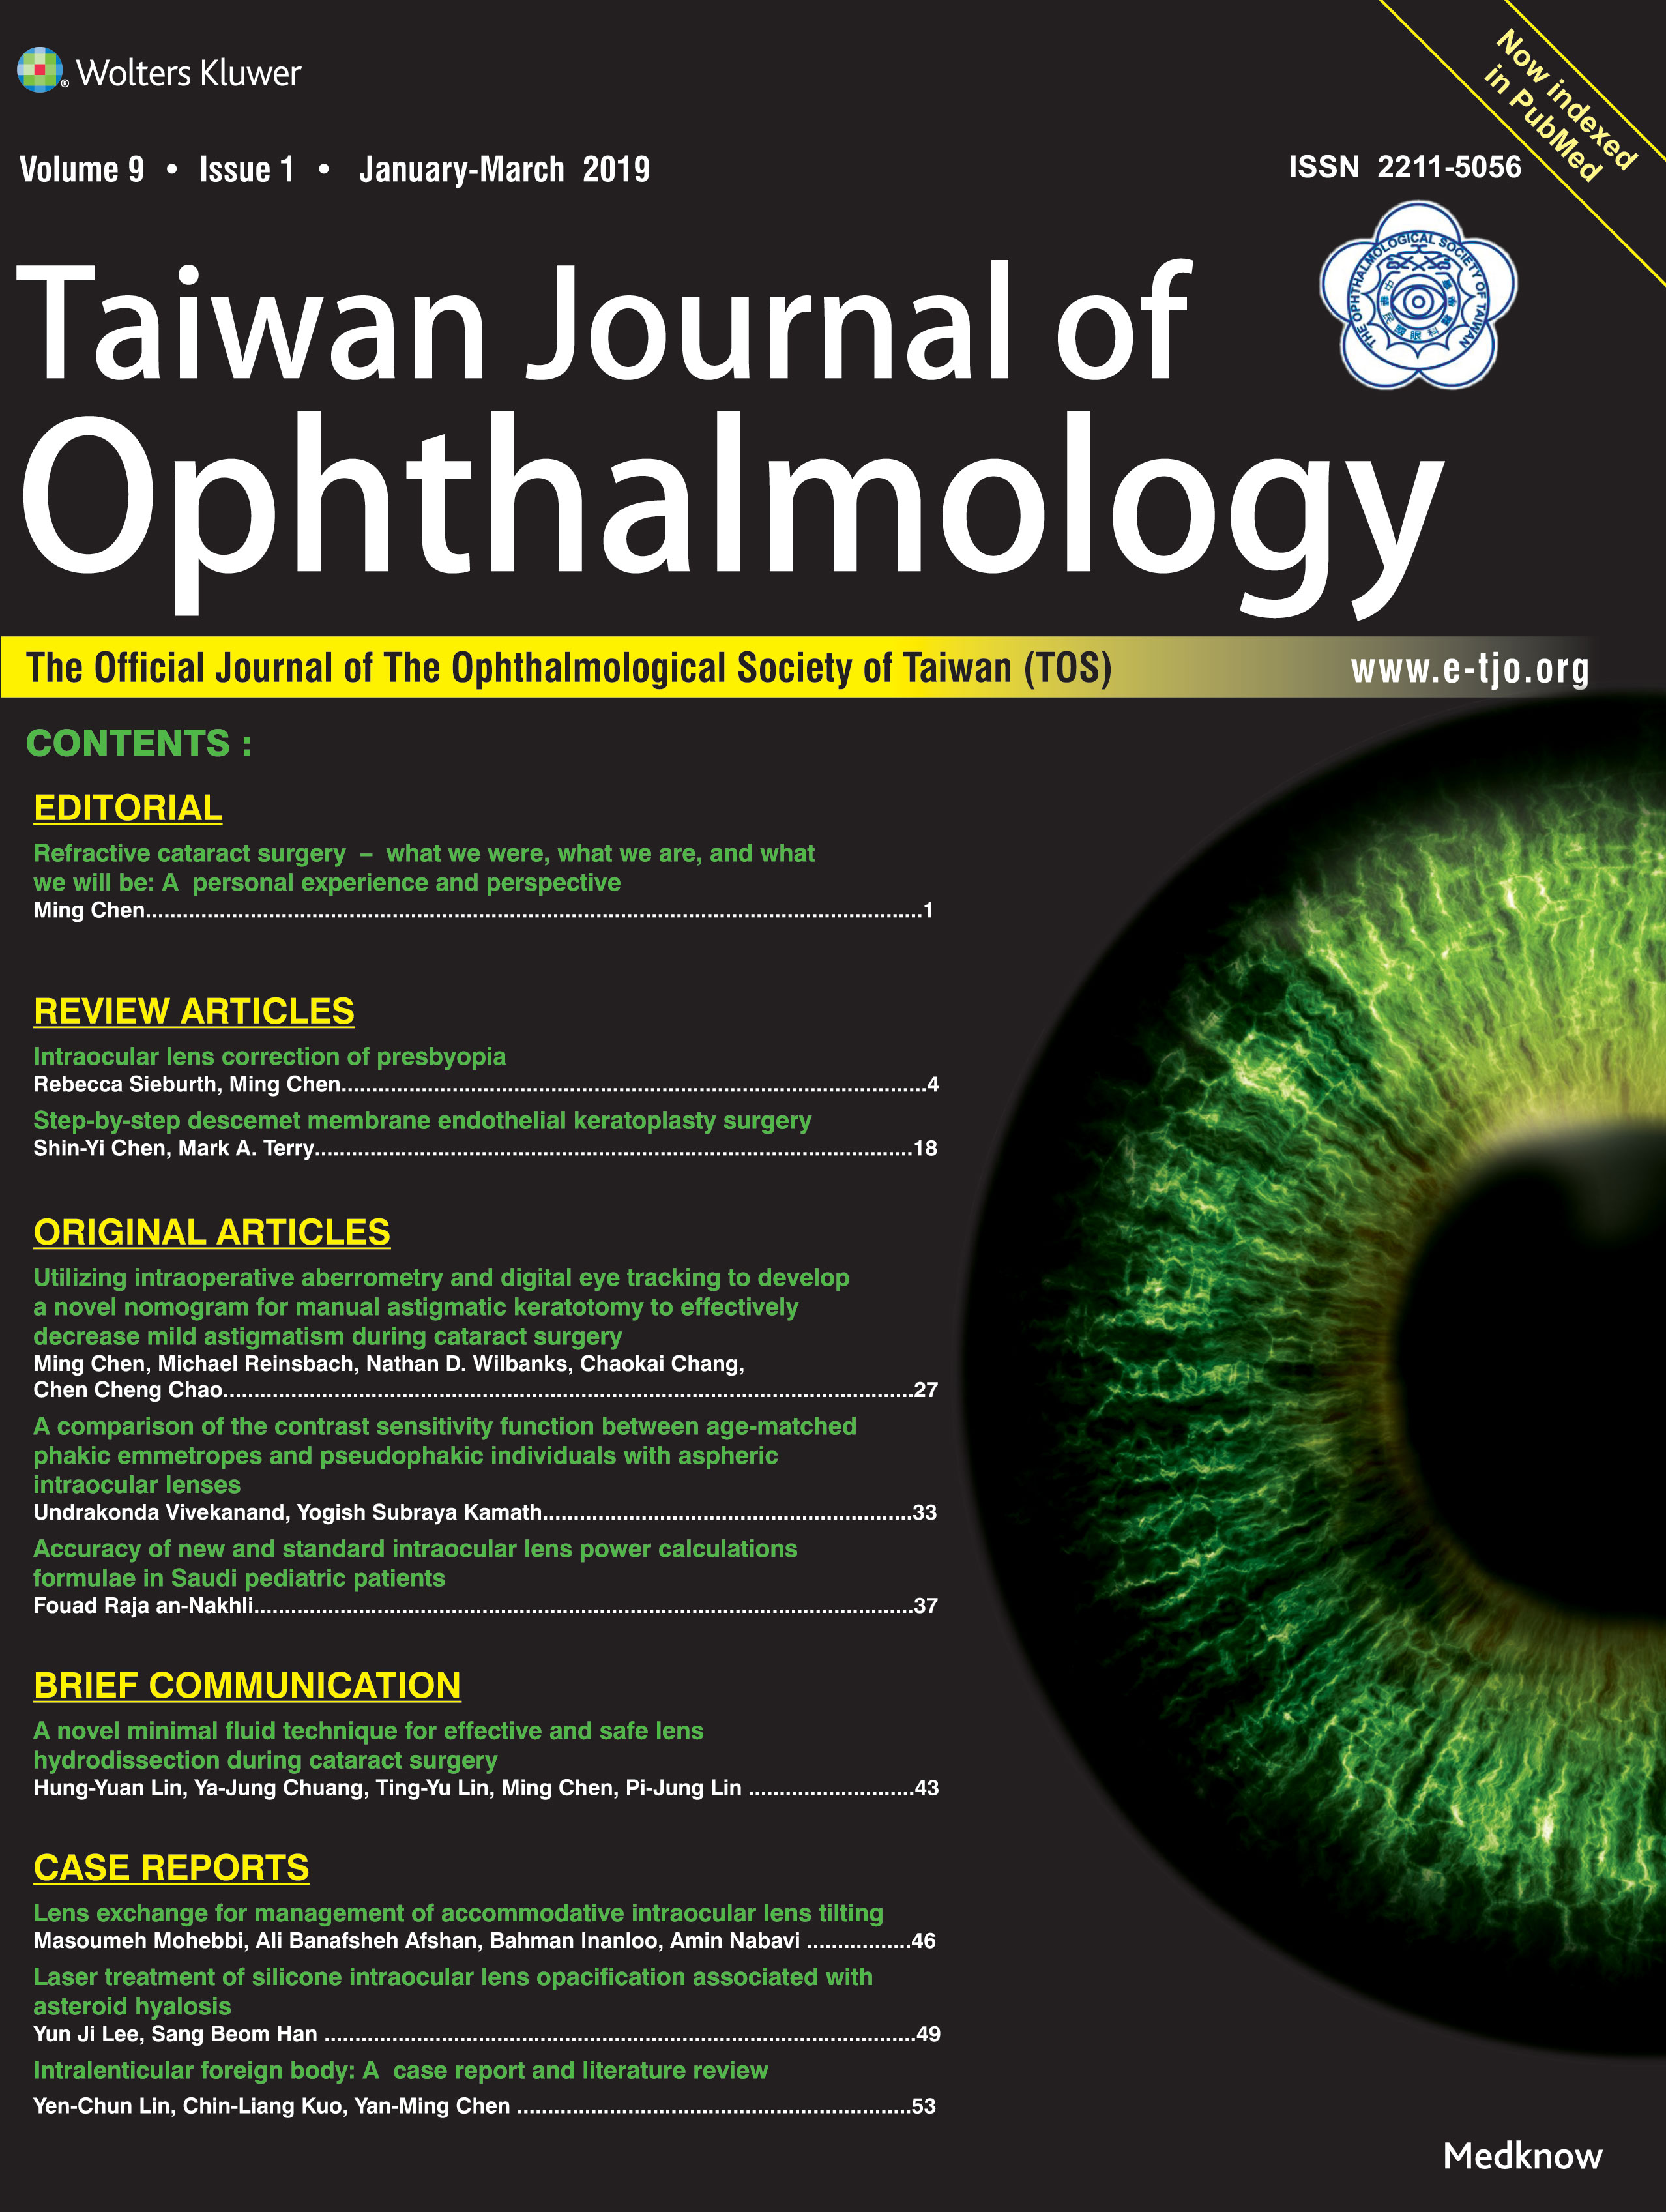 Taiwan Journal of Ophthalmology